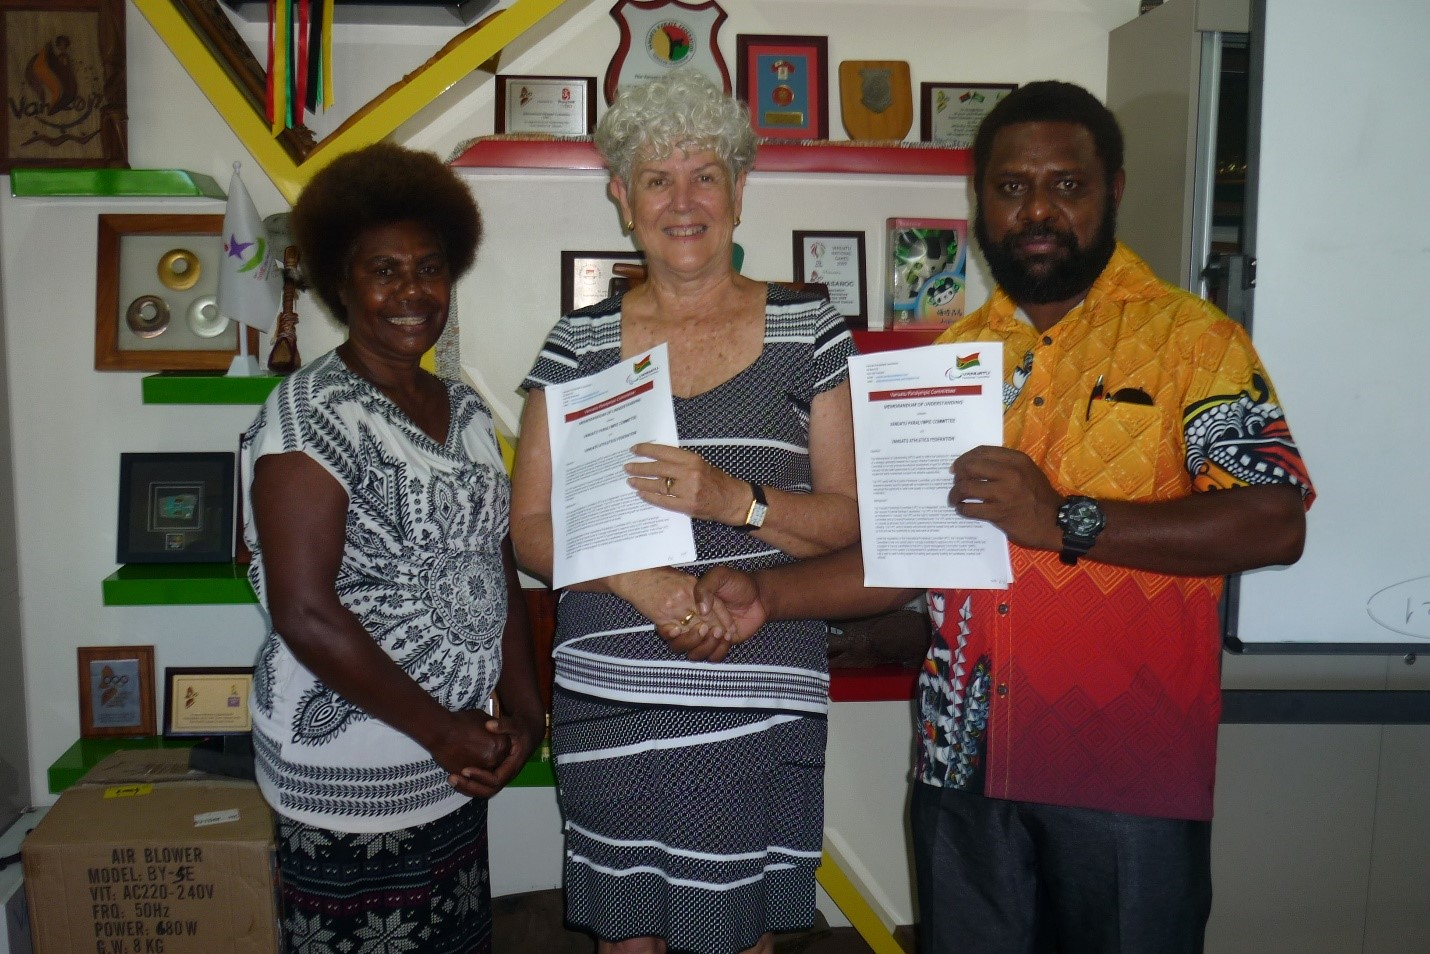 MOU signed between Vanuatu Paralympic Committee and Vanuatu Athletics Federation - Following the recent success of the Melanesian Athletics Championships hosted by the newly reconstituted Vanuatu Athletics Federation (VAF), a Memorandum of Understanding (MOU) has been signed with the Vanuatu Paralympic Committee (VPC)...